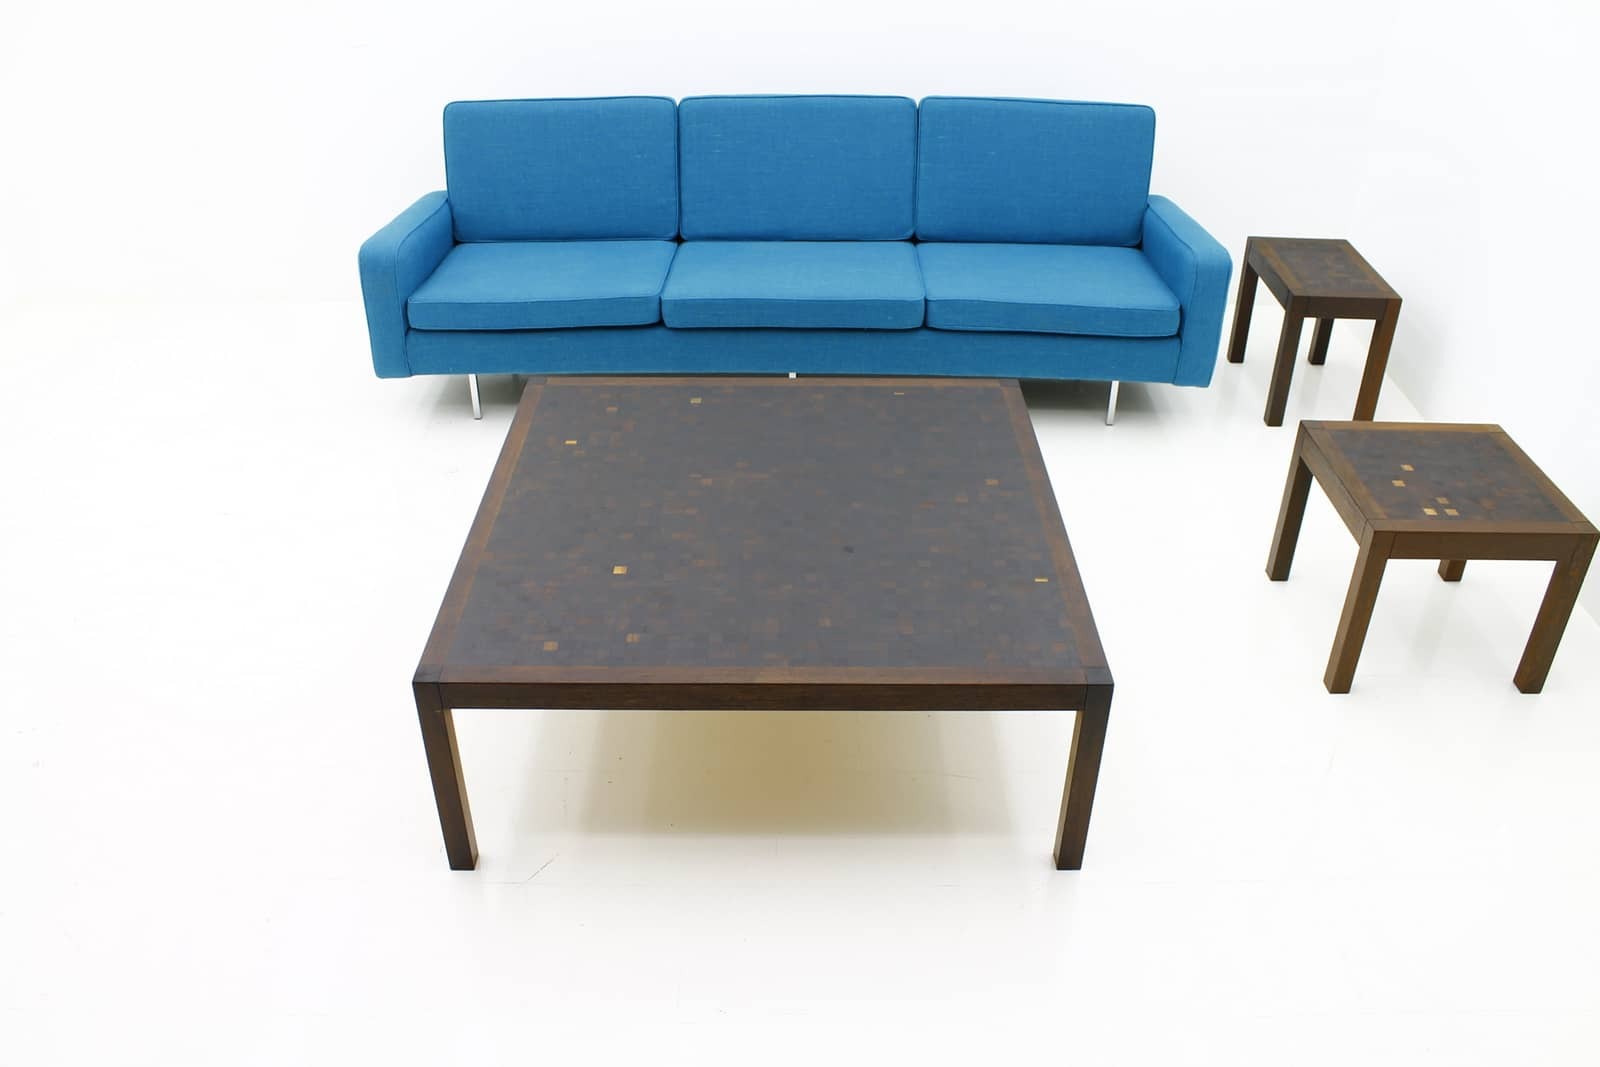 Coffee Table by Dieter Wäckerlin for Idealheim (t)